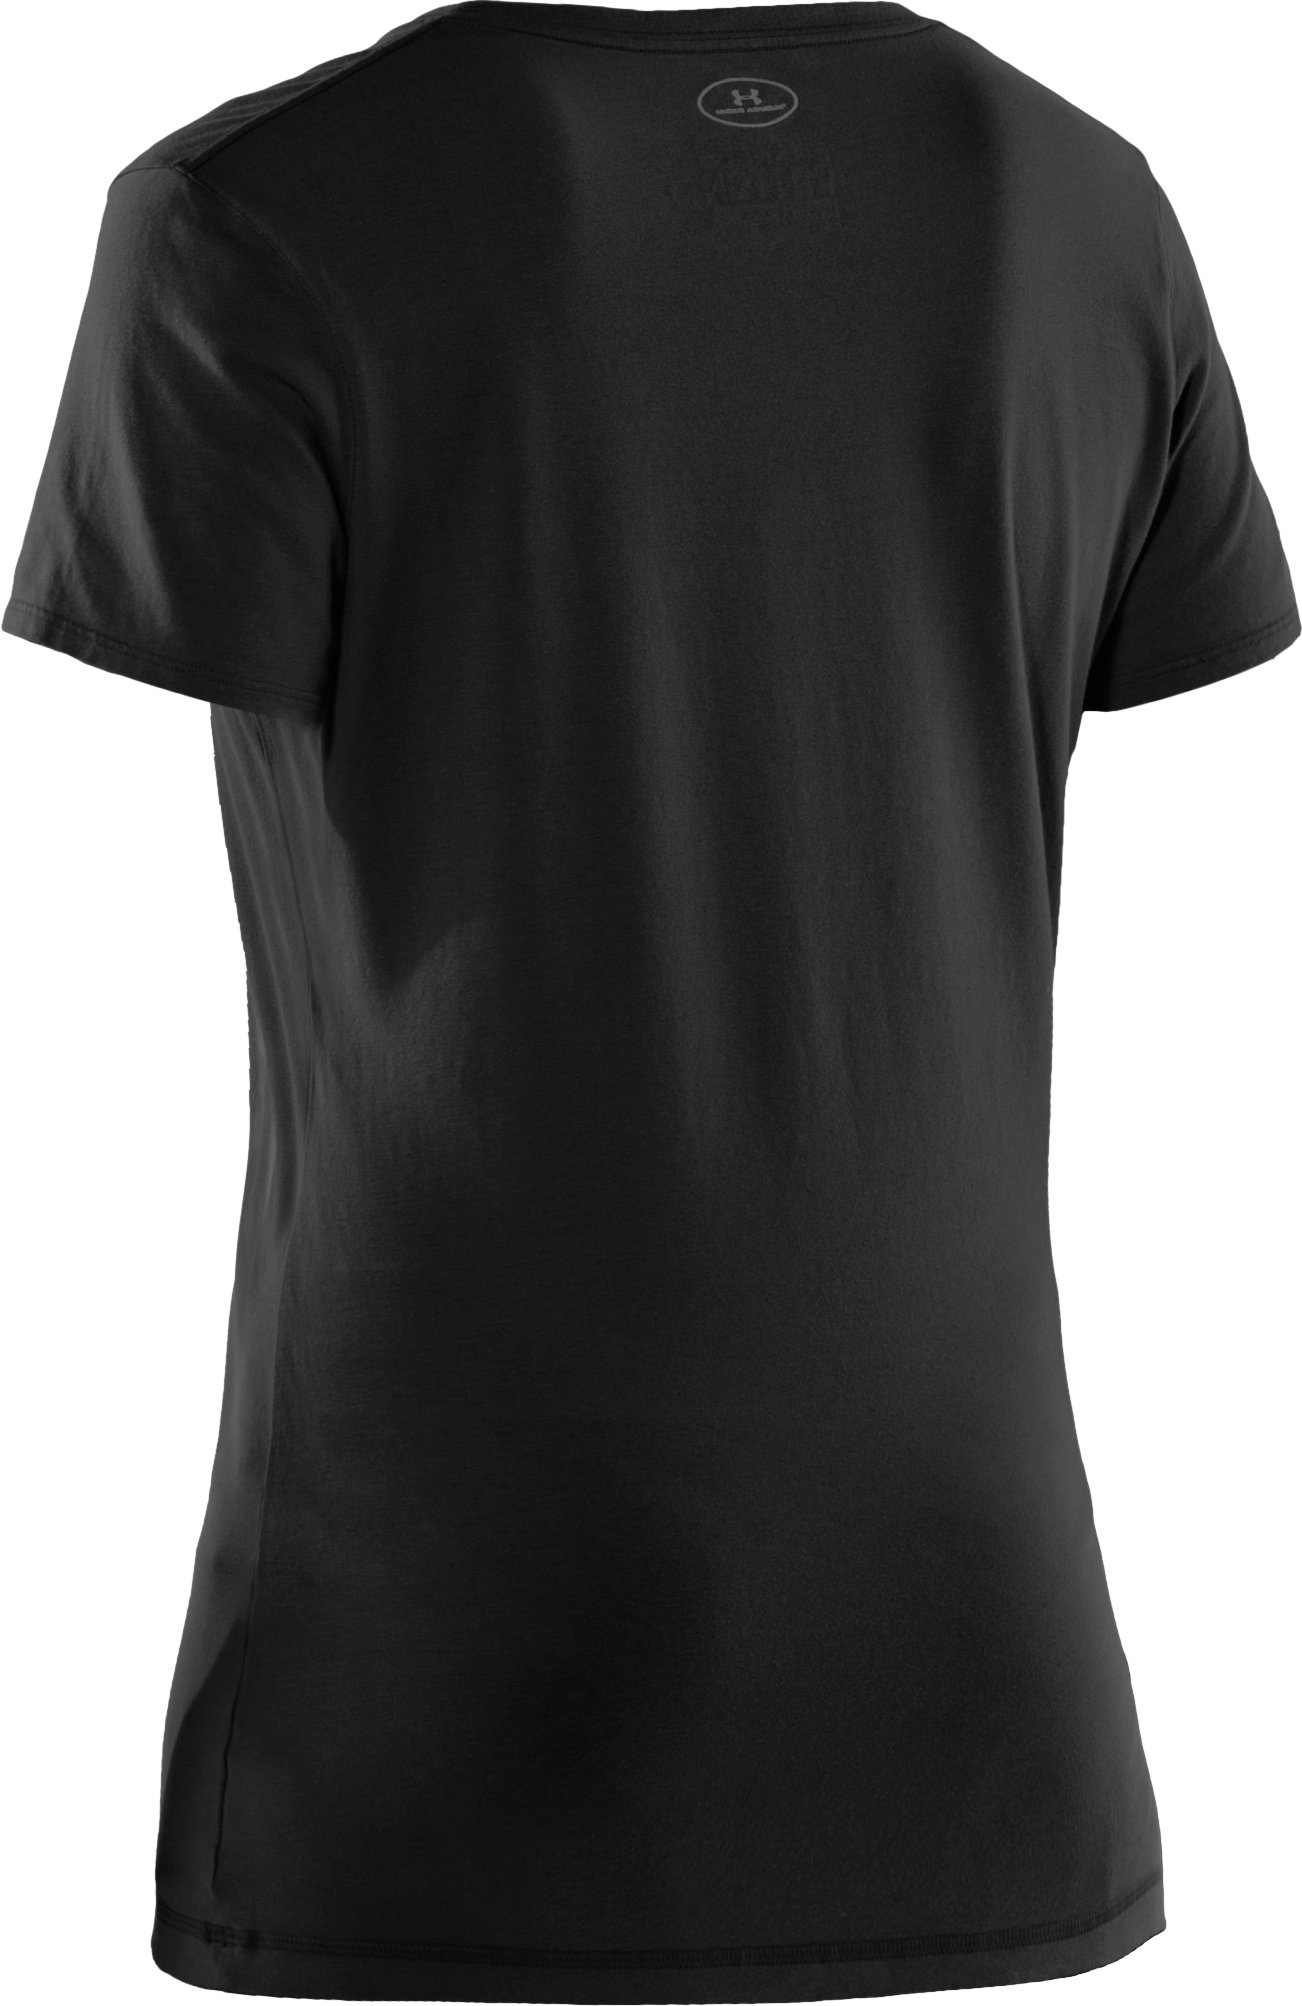 Women's Charged Cotton® Sassy Scoop T-Shirt, Black